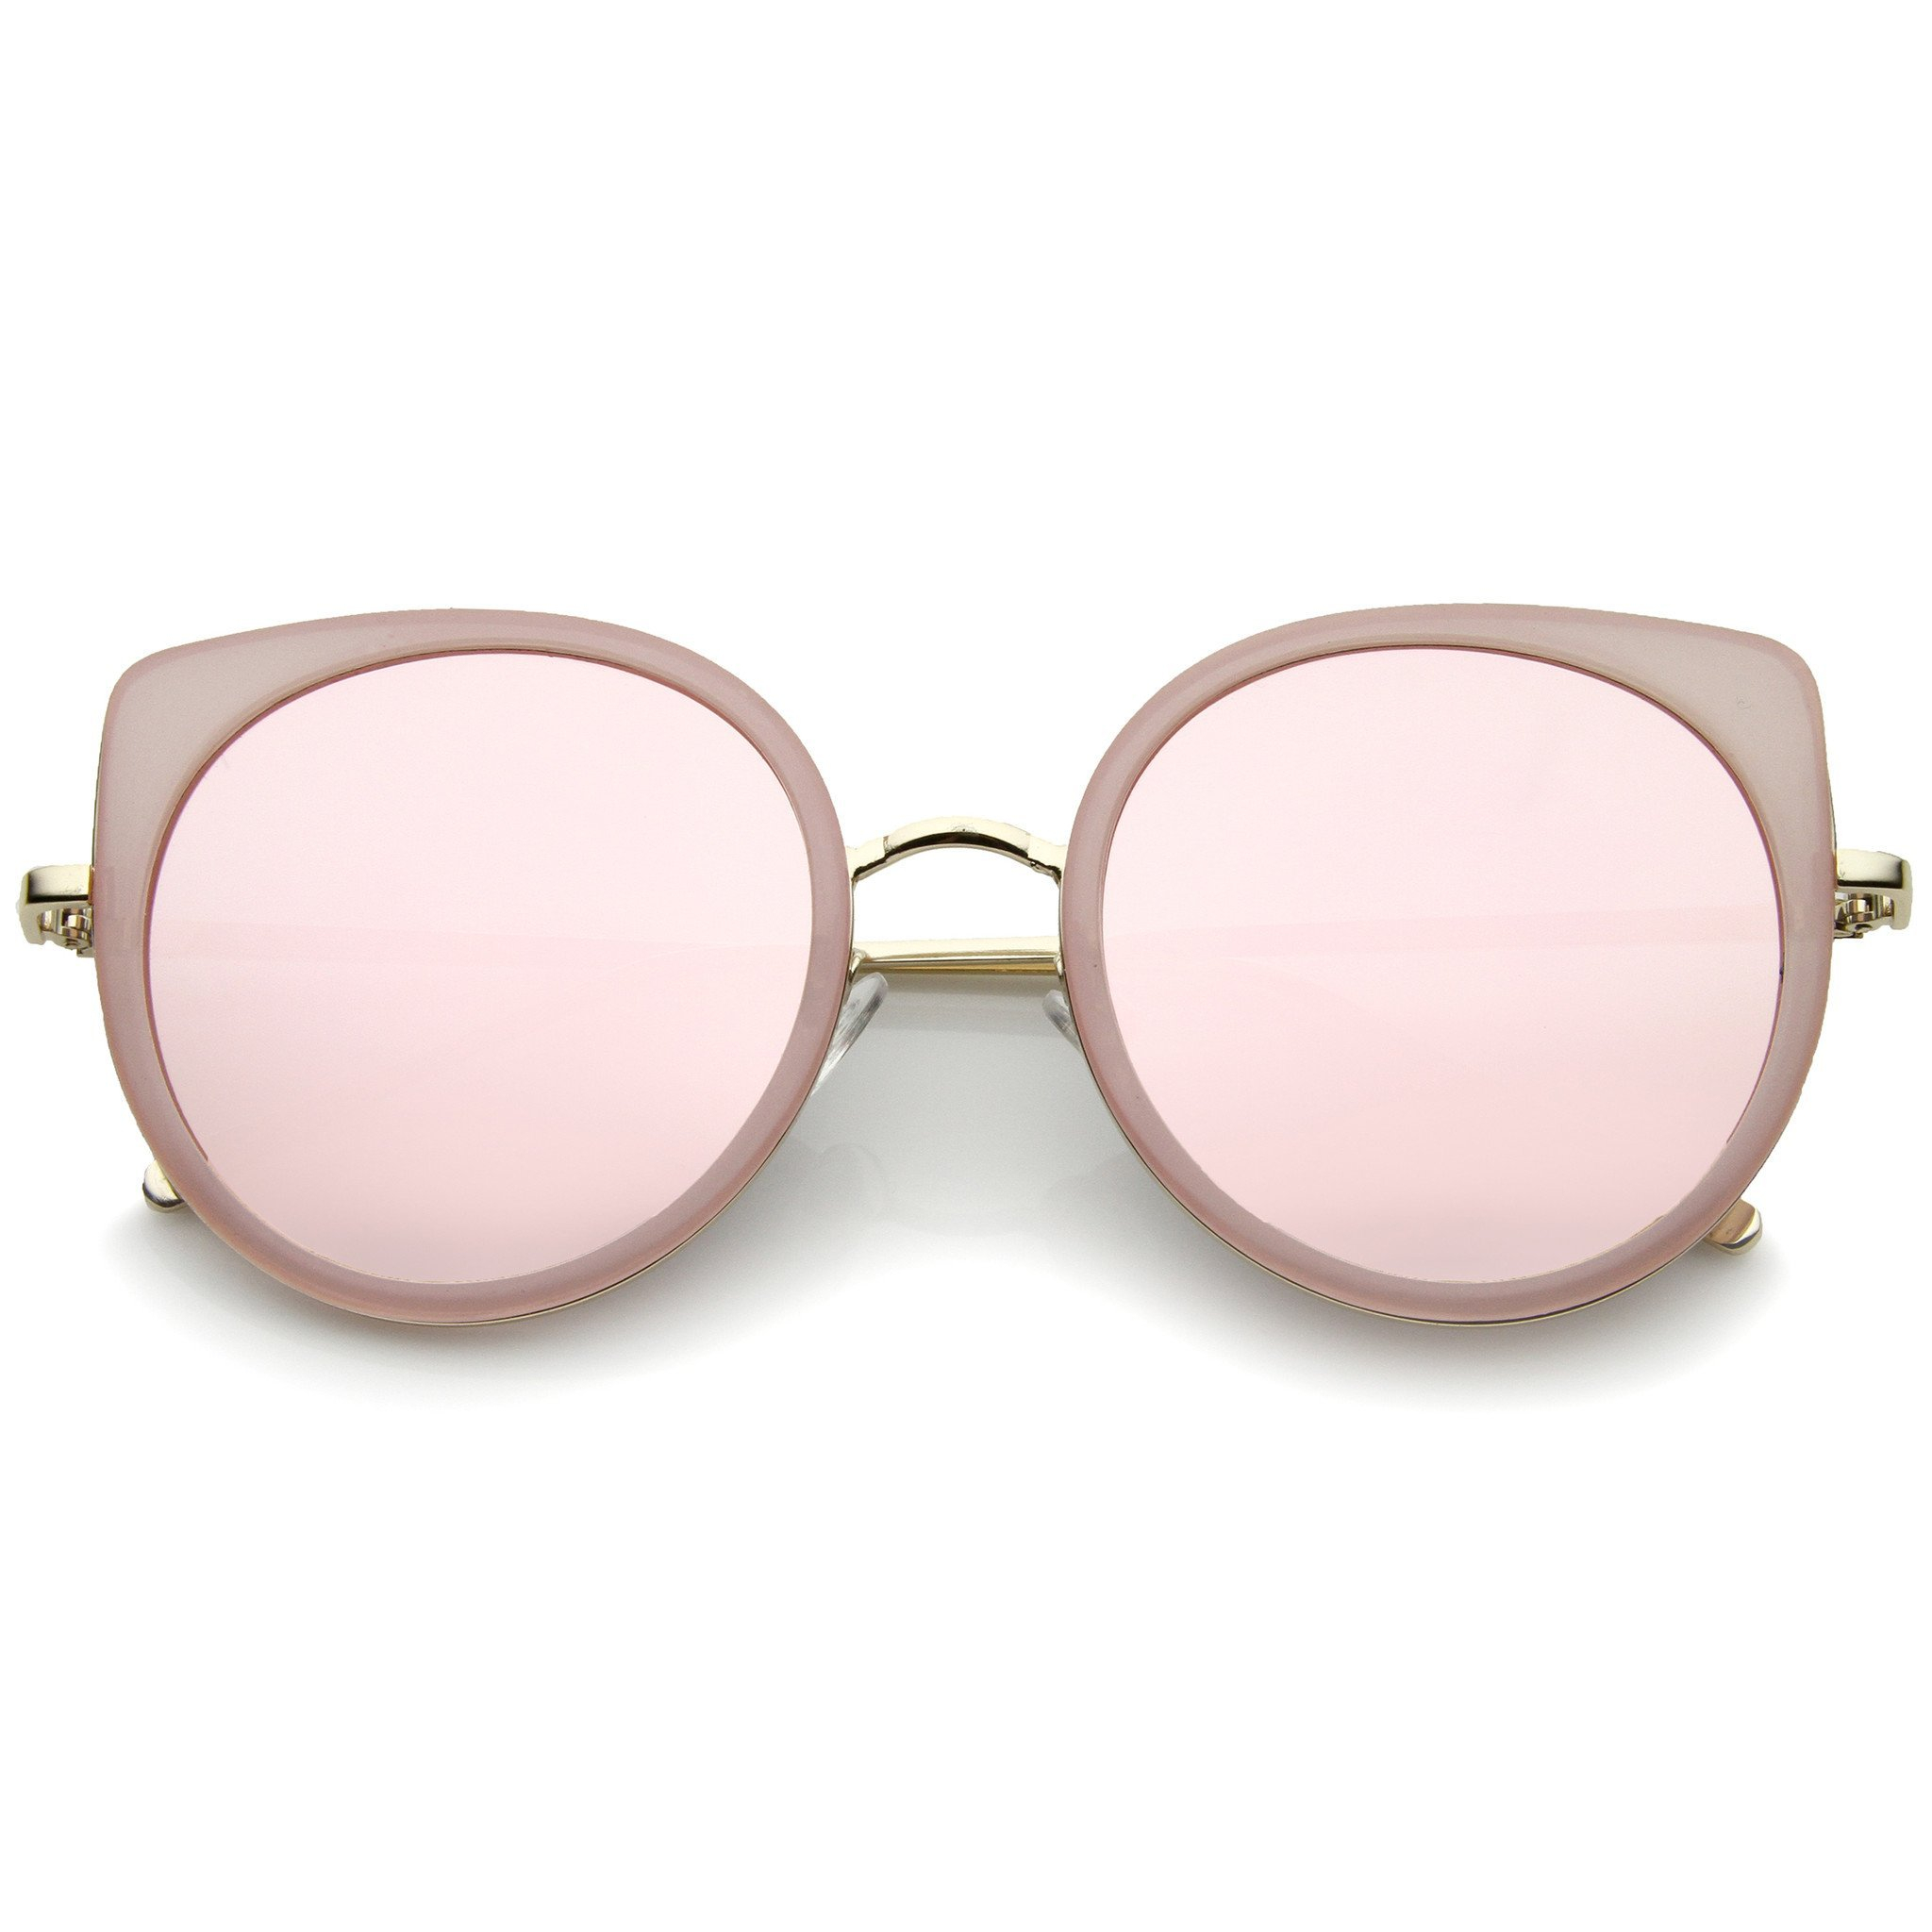 d183bc11495c4 Women s Slim Round Flat Mirror Lens Cat Eye Sunglasses A815